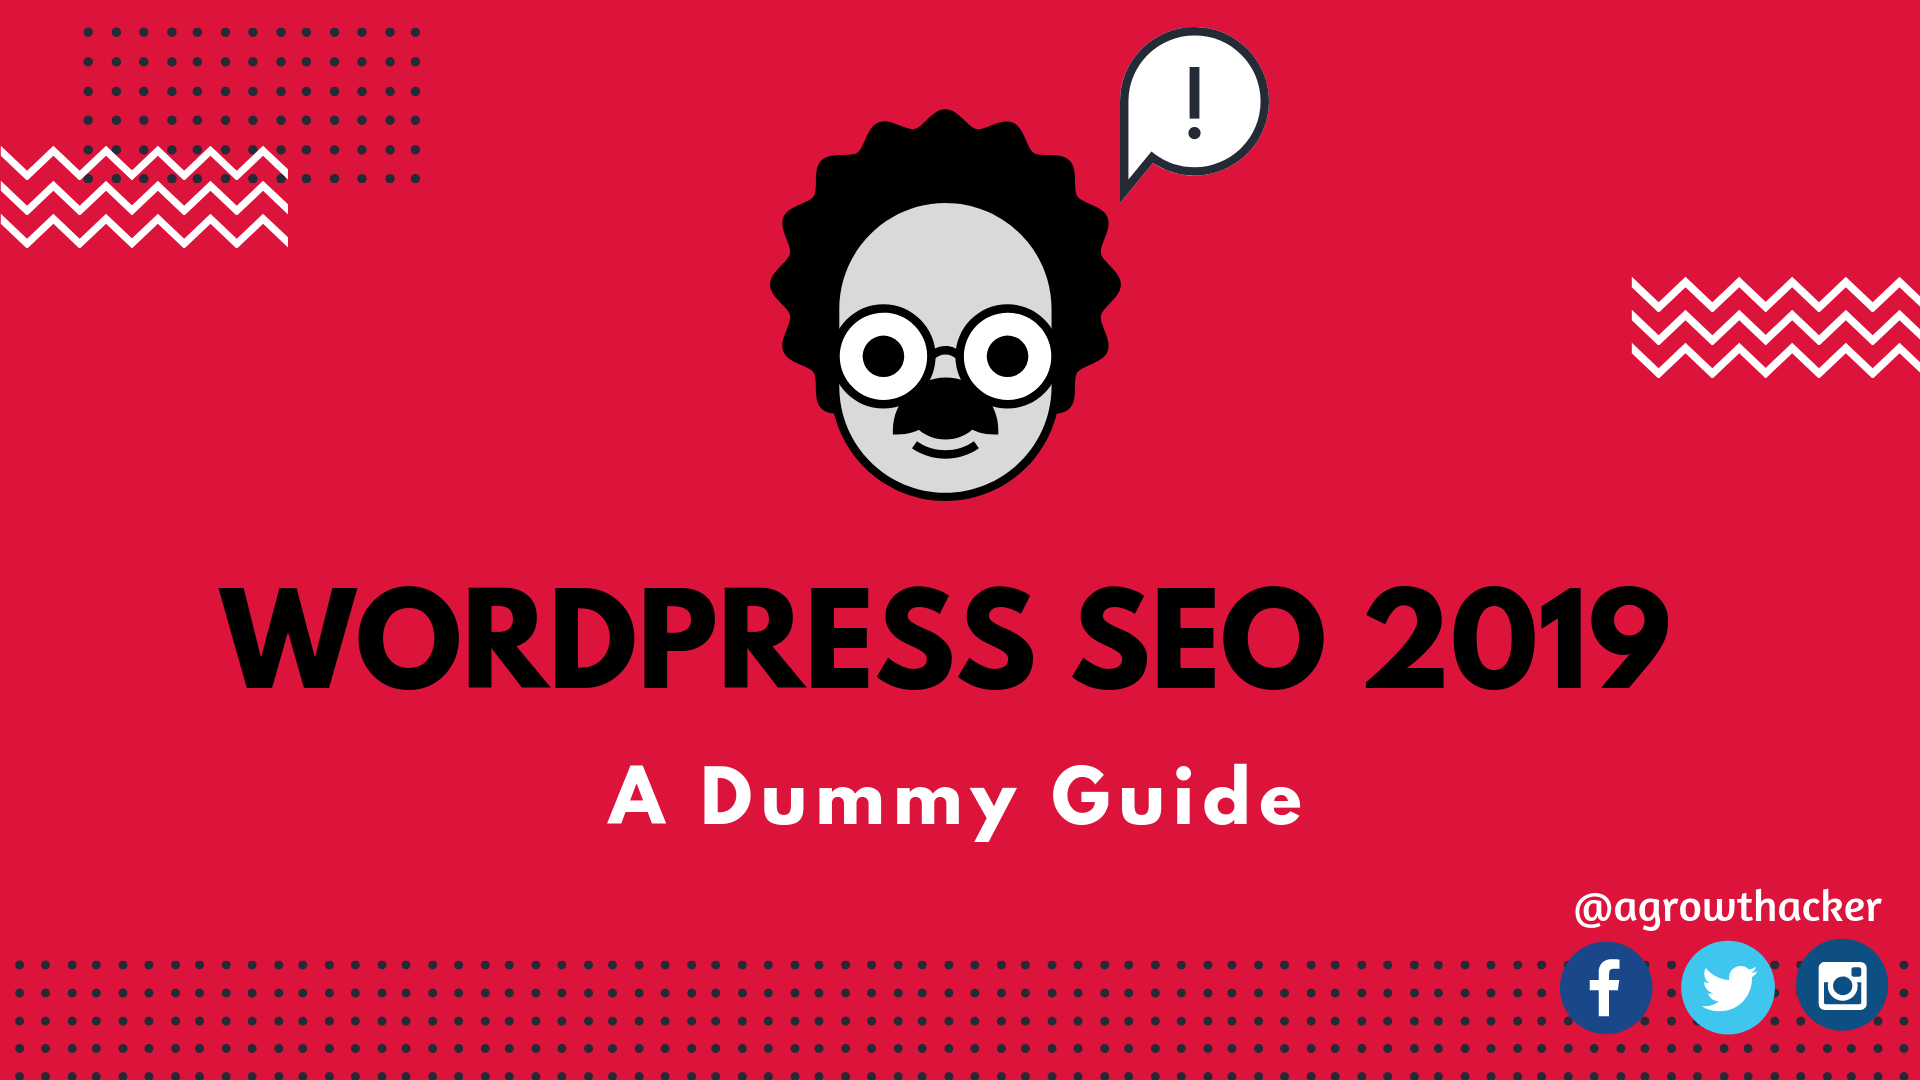 A Guide to WordPress SEO 2019